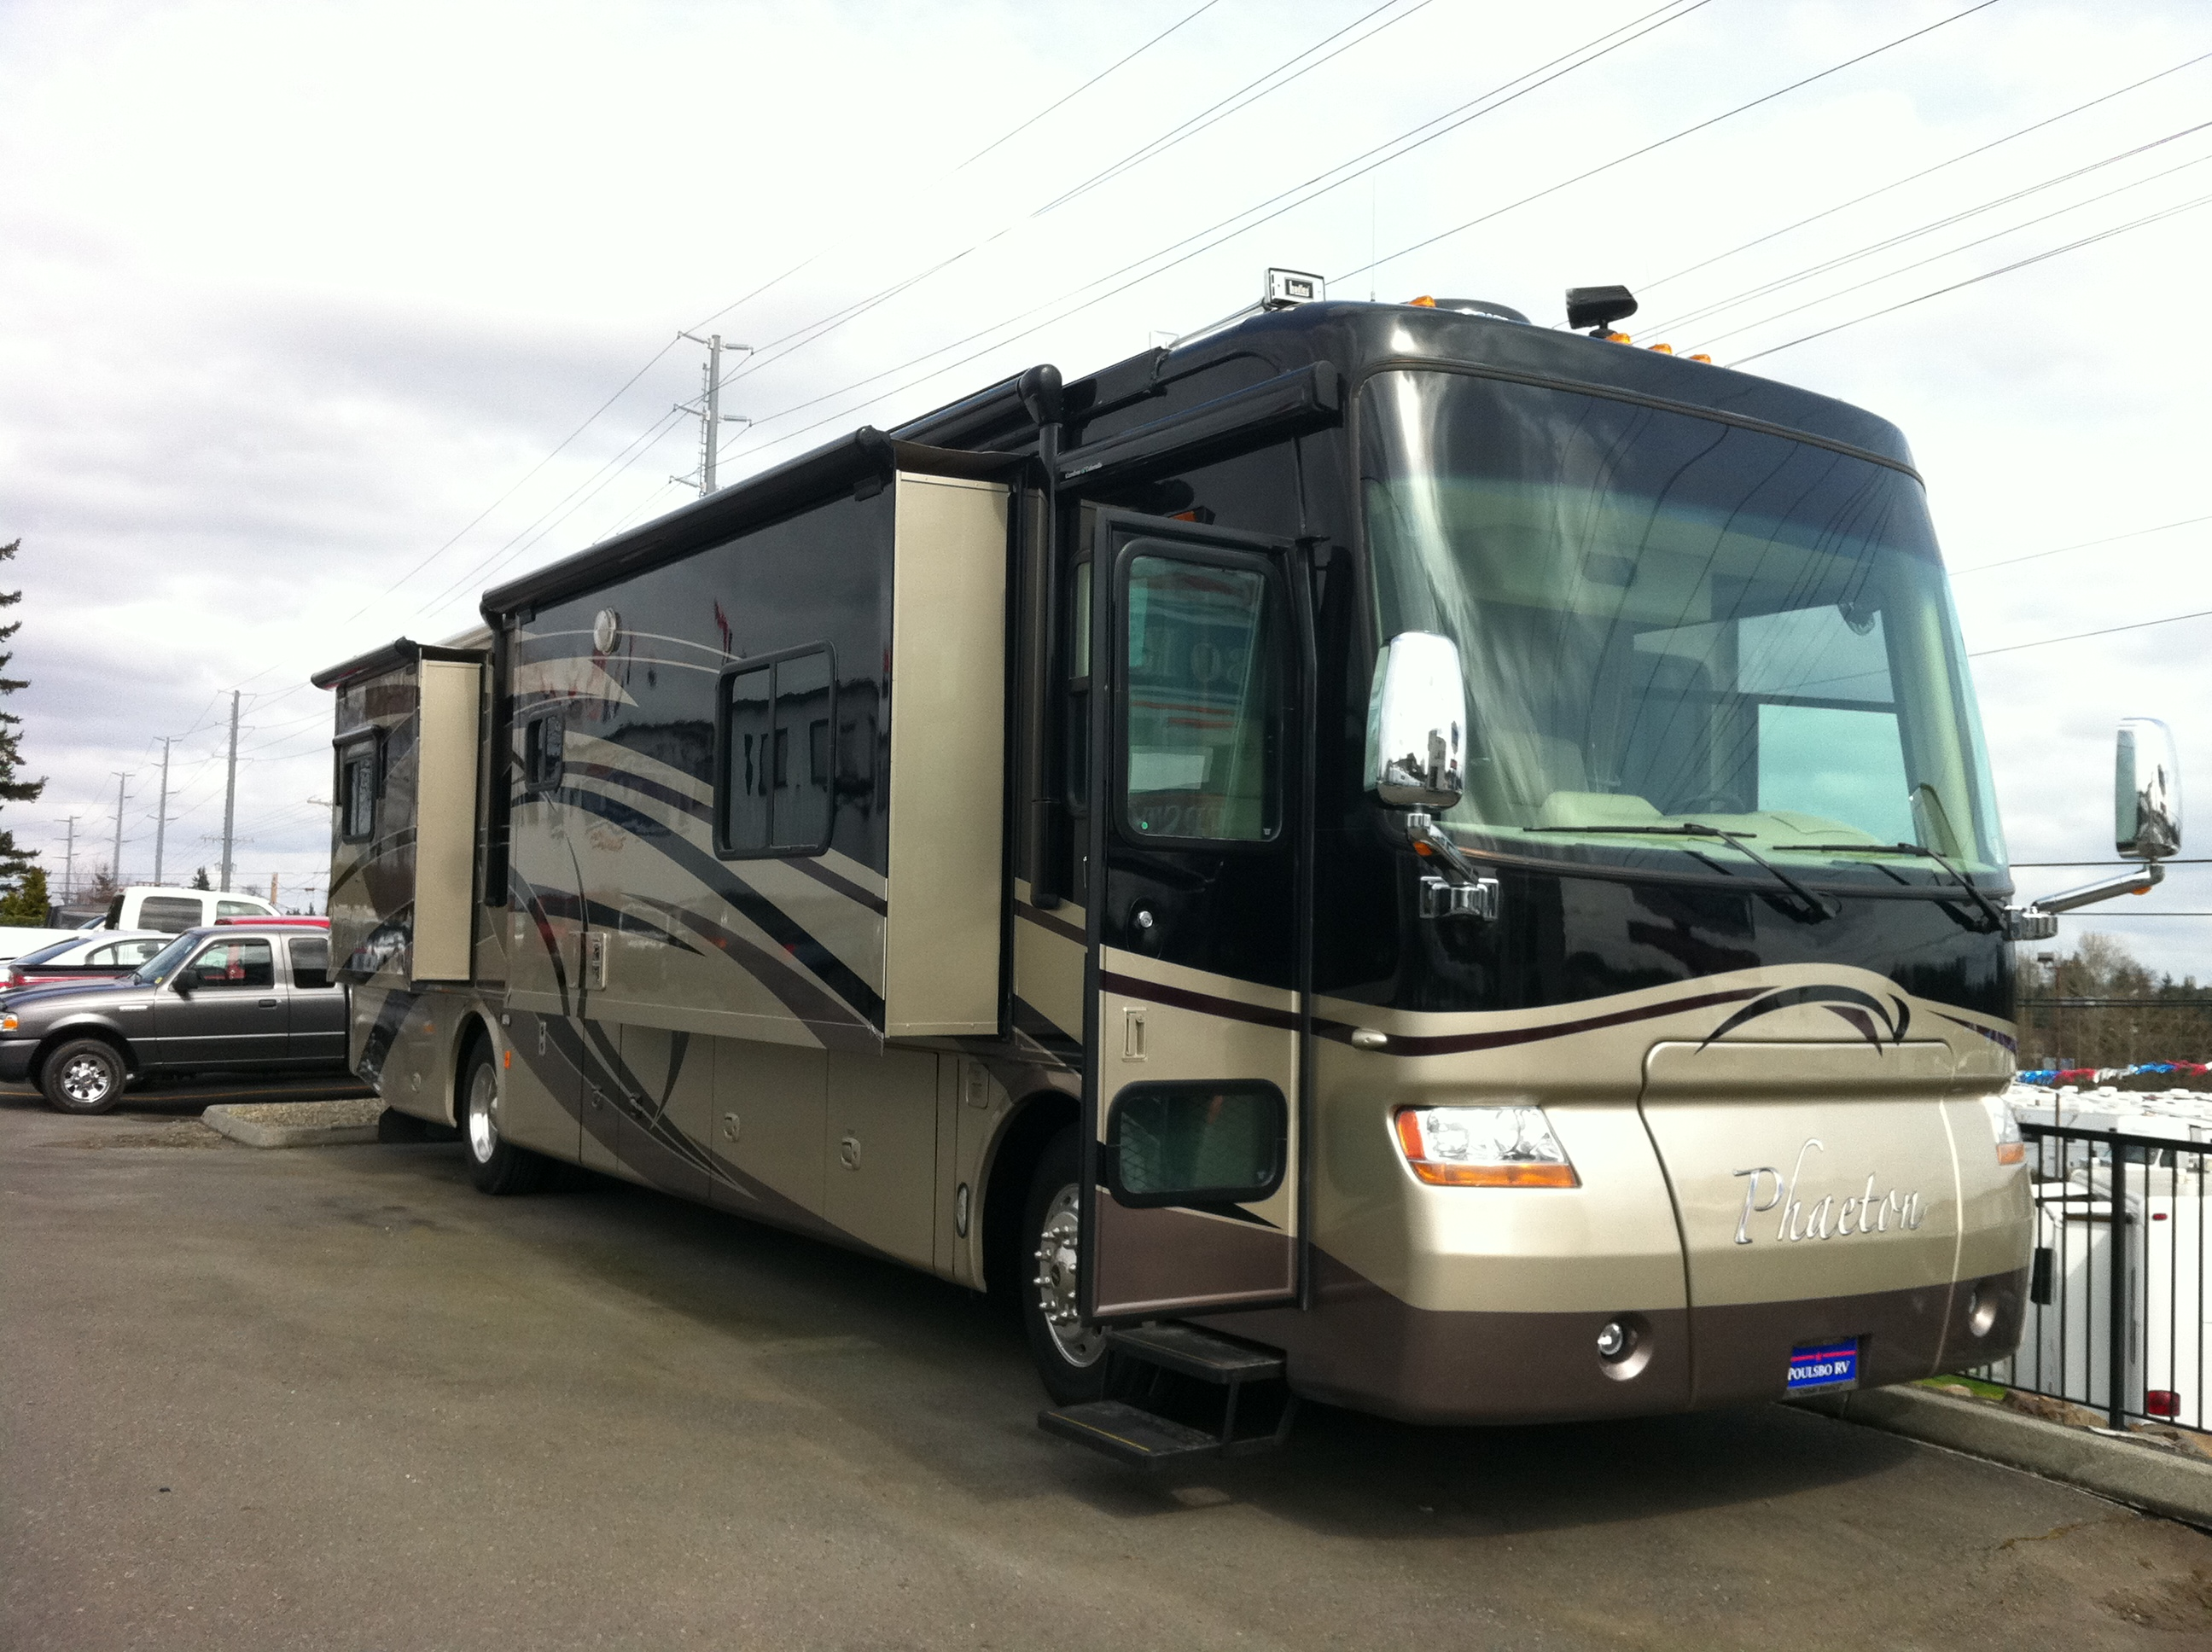 Enter The Recreational Vehicle Travellearners